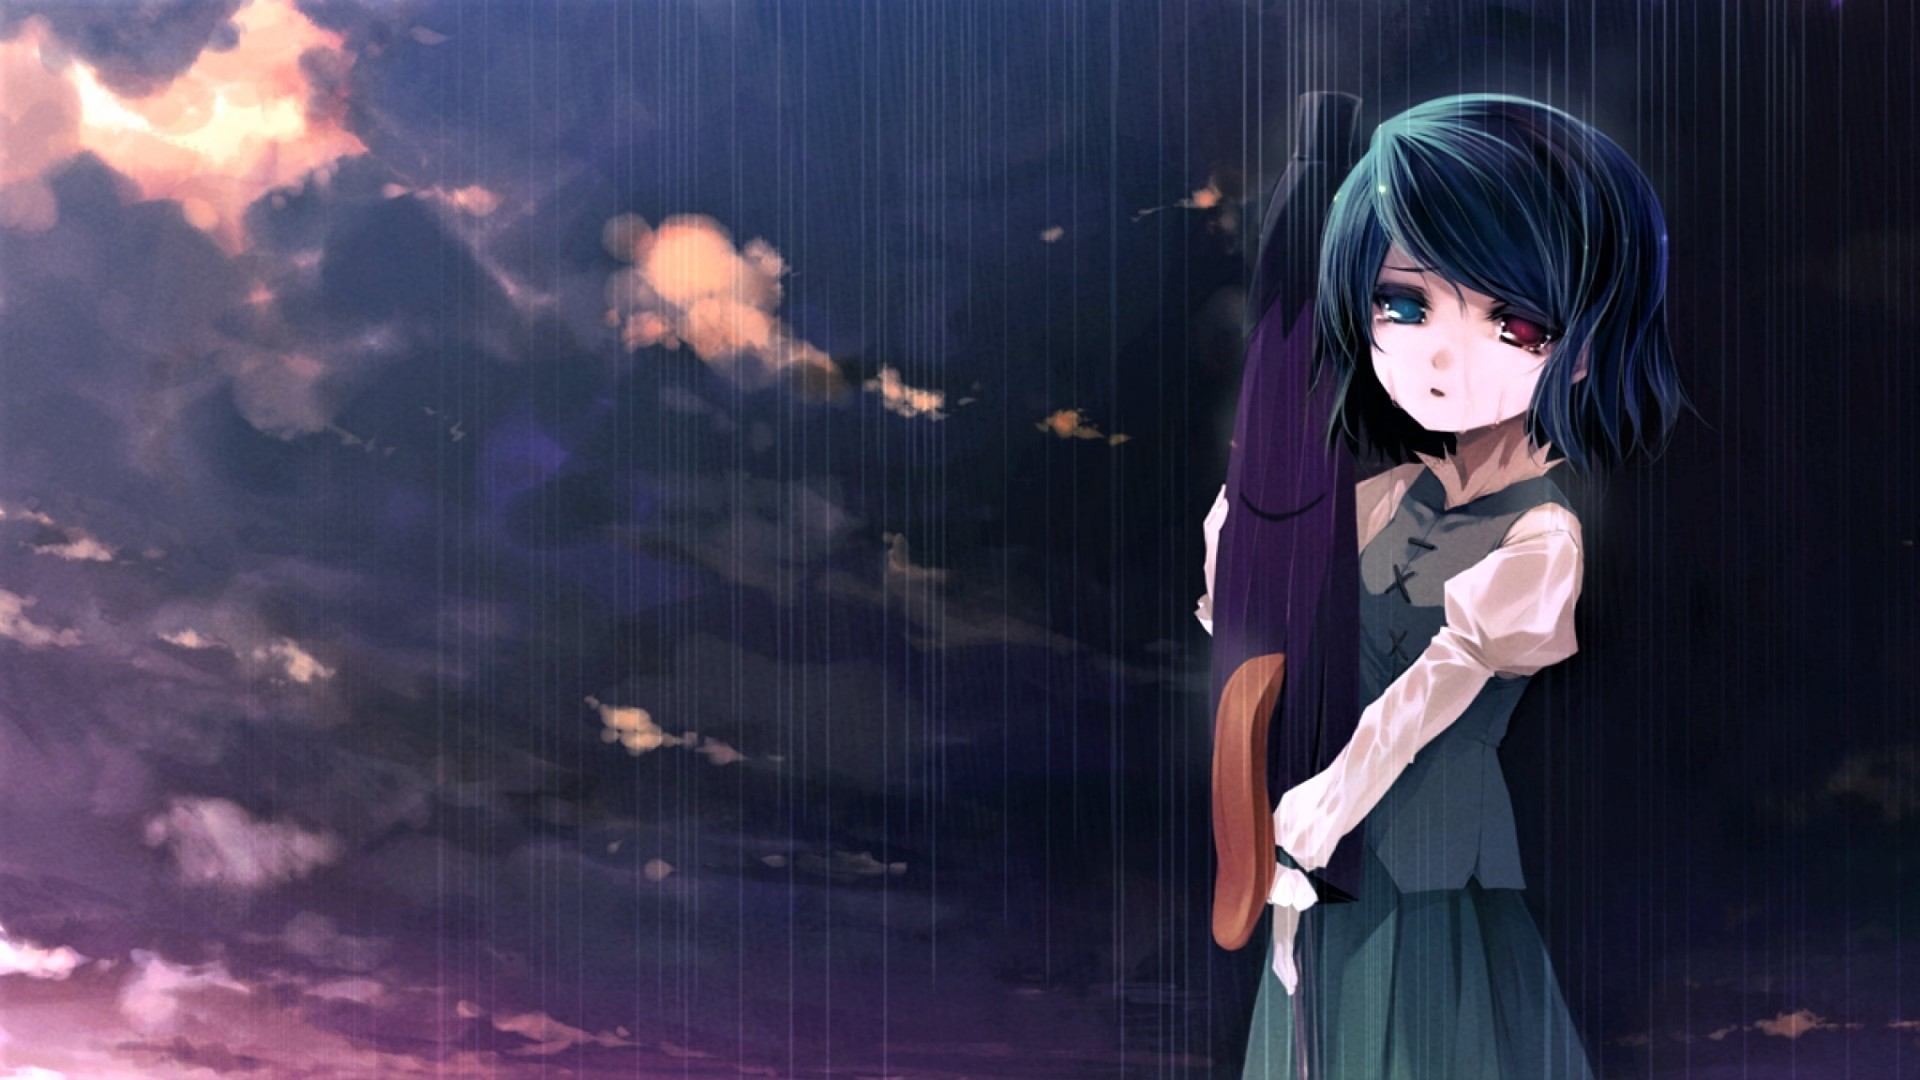 Wallpaper Of Lonely Girl In Rain Sad Anime Girl Wallpaper Sad Anime Boy Wallpaper